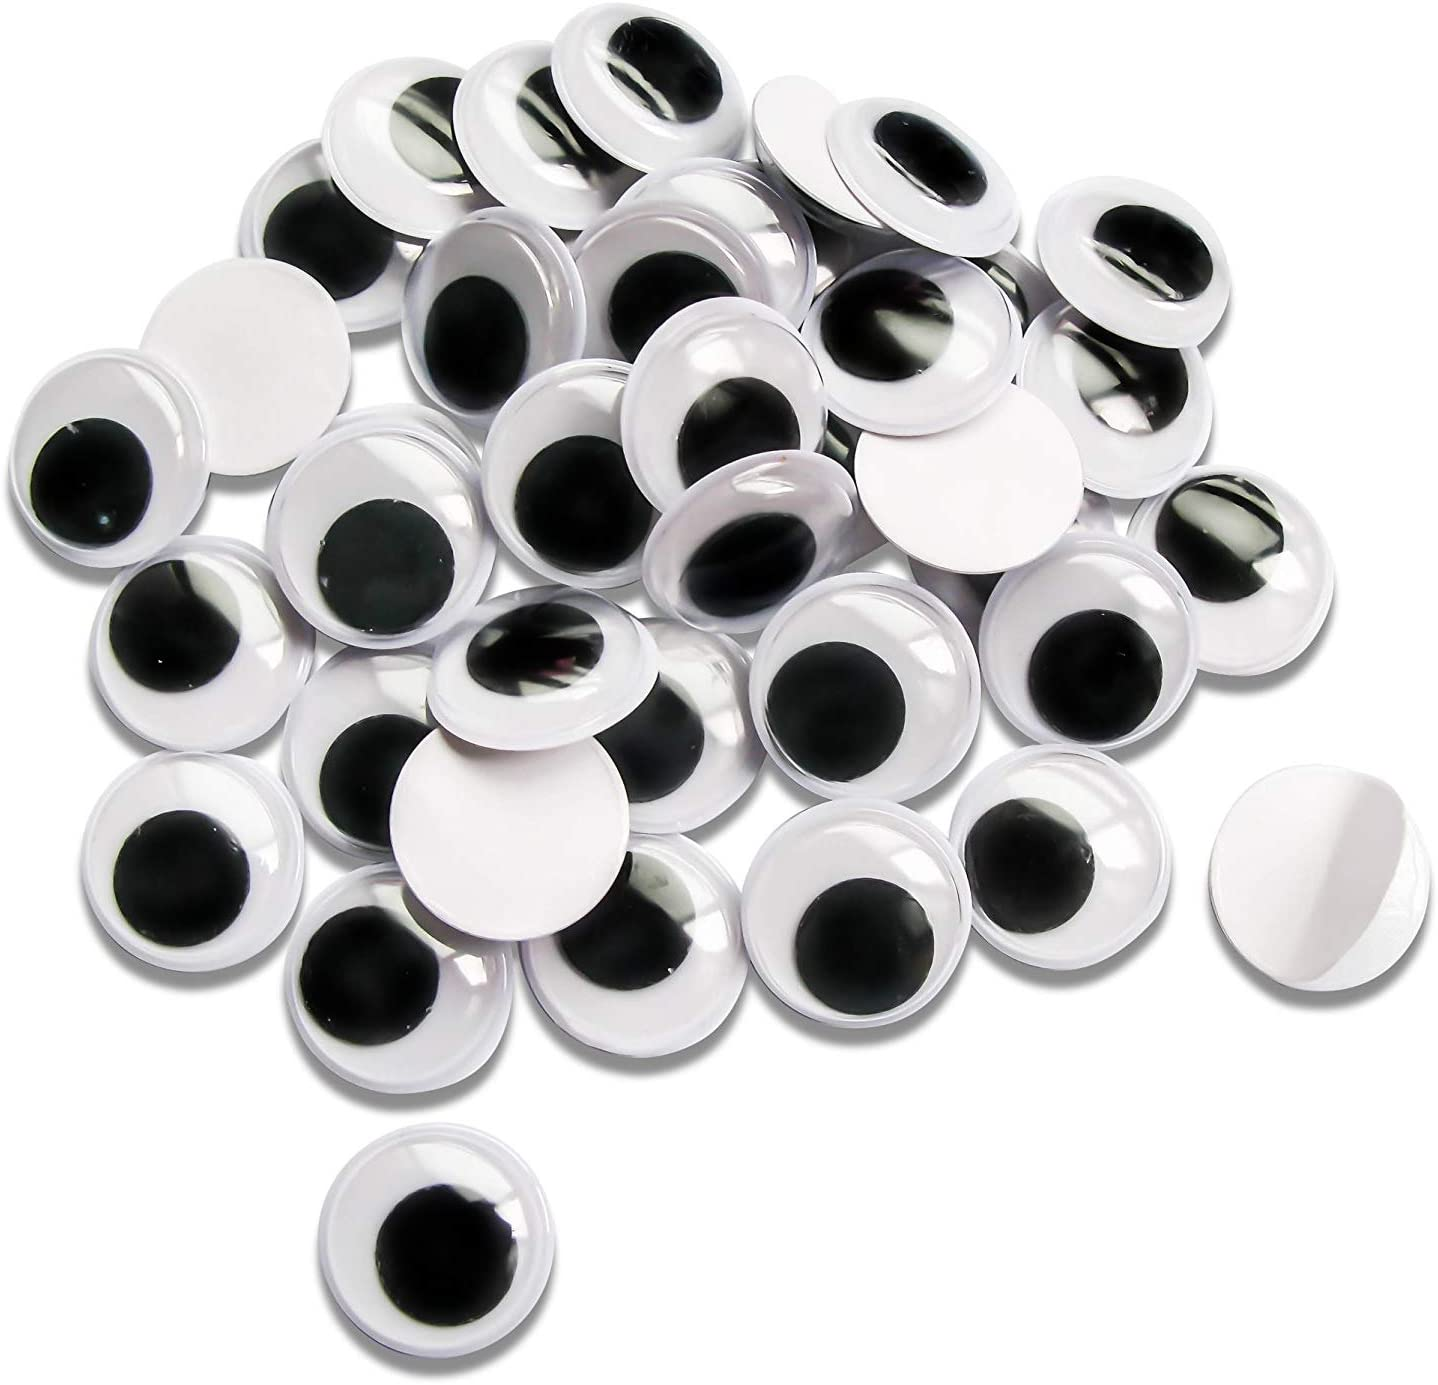 Ranking TOP8 TOAOB 200pcs 20mm Wiggle Googly Eyes Black Ro Adhesive Max 83% OFF Self with